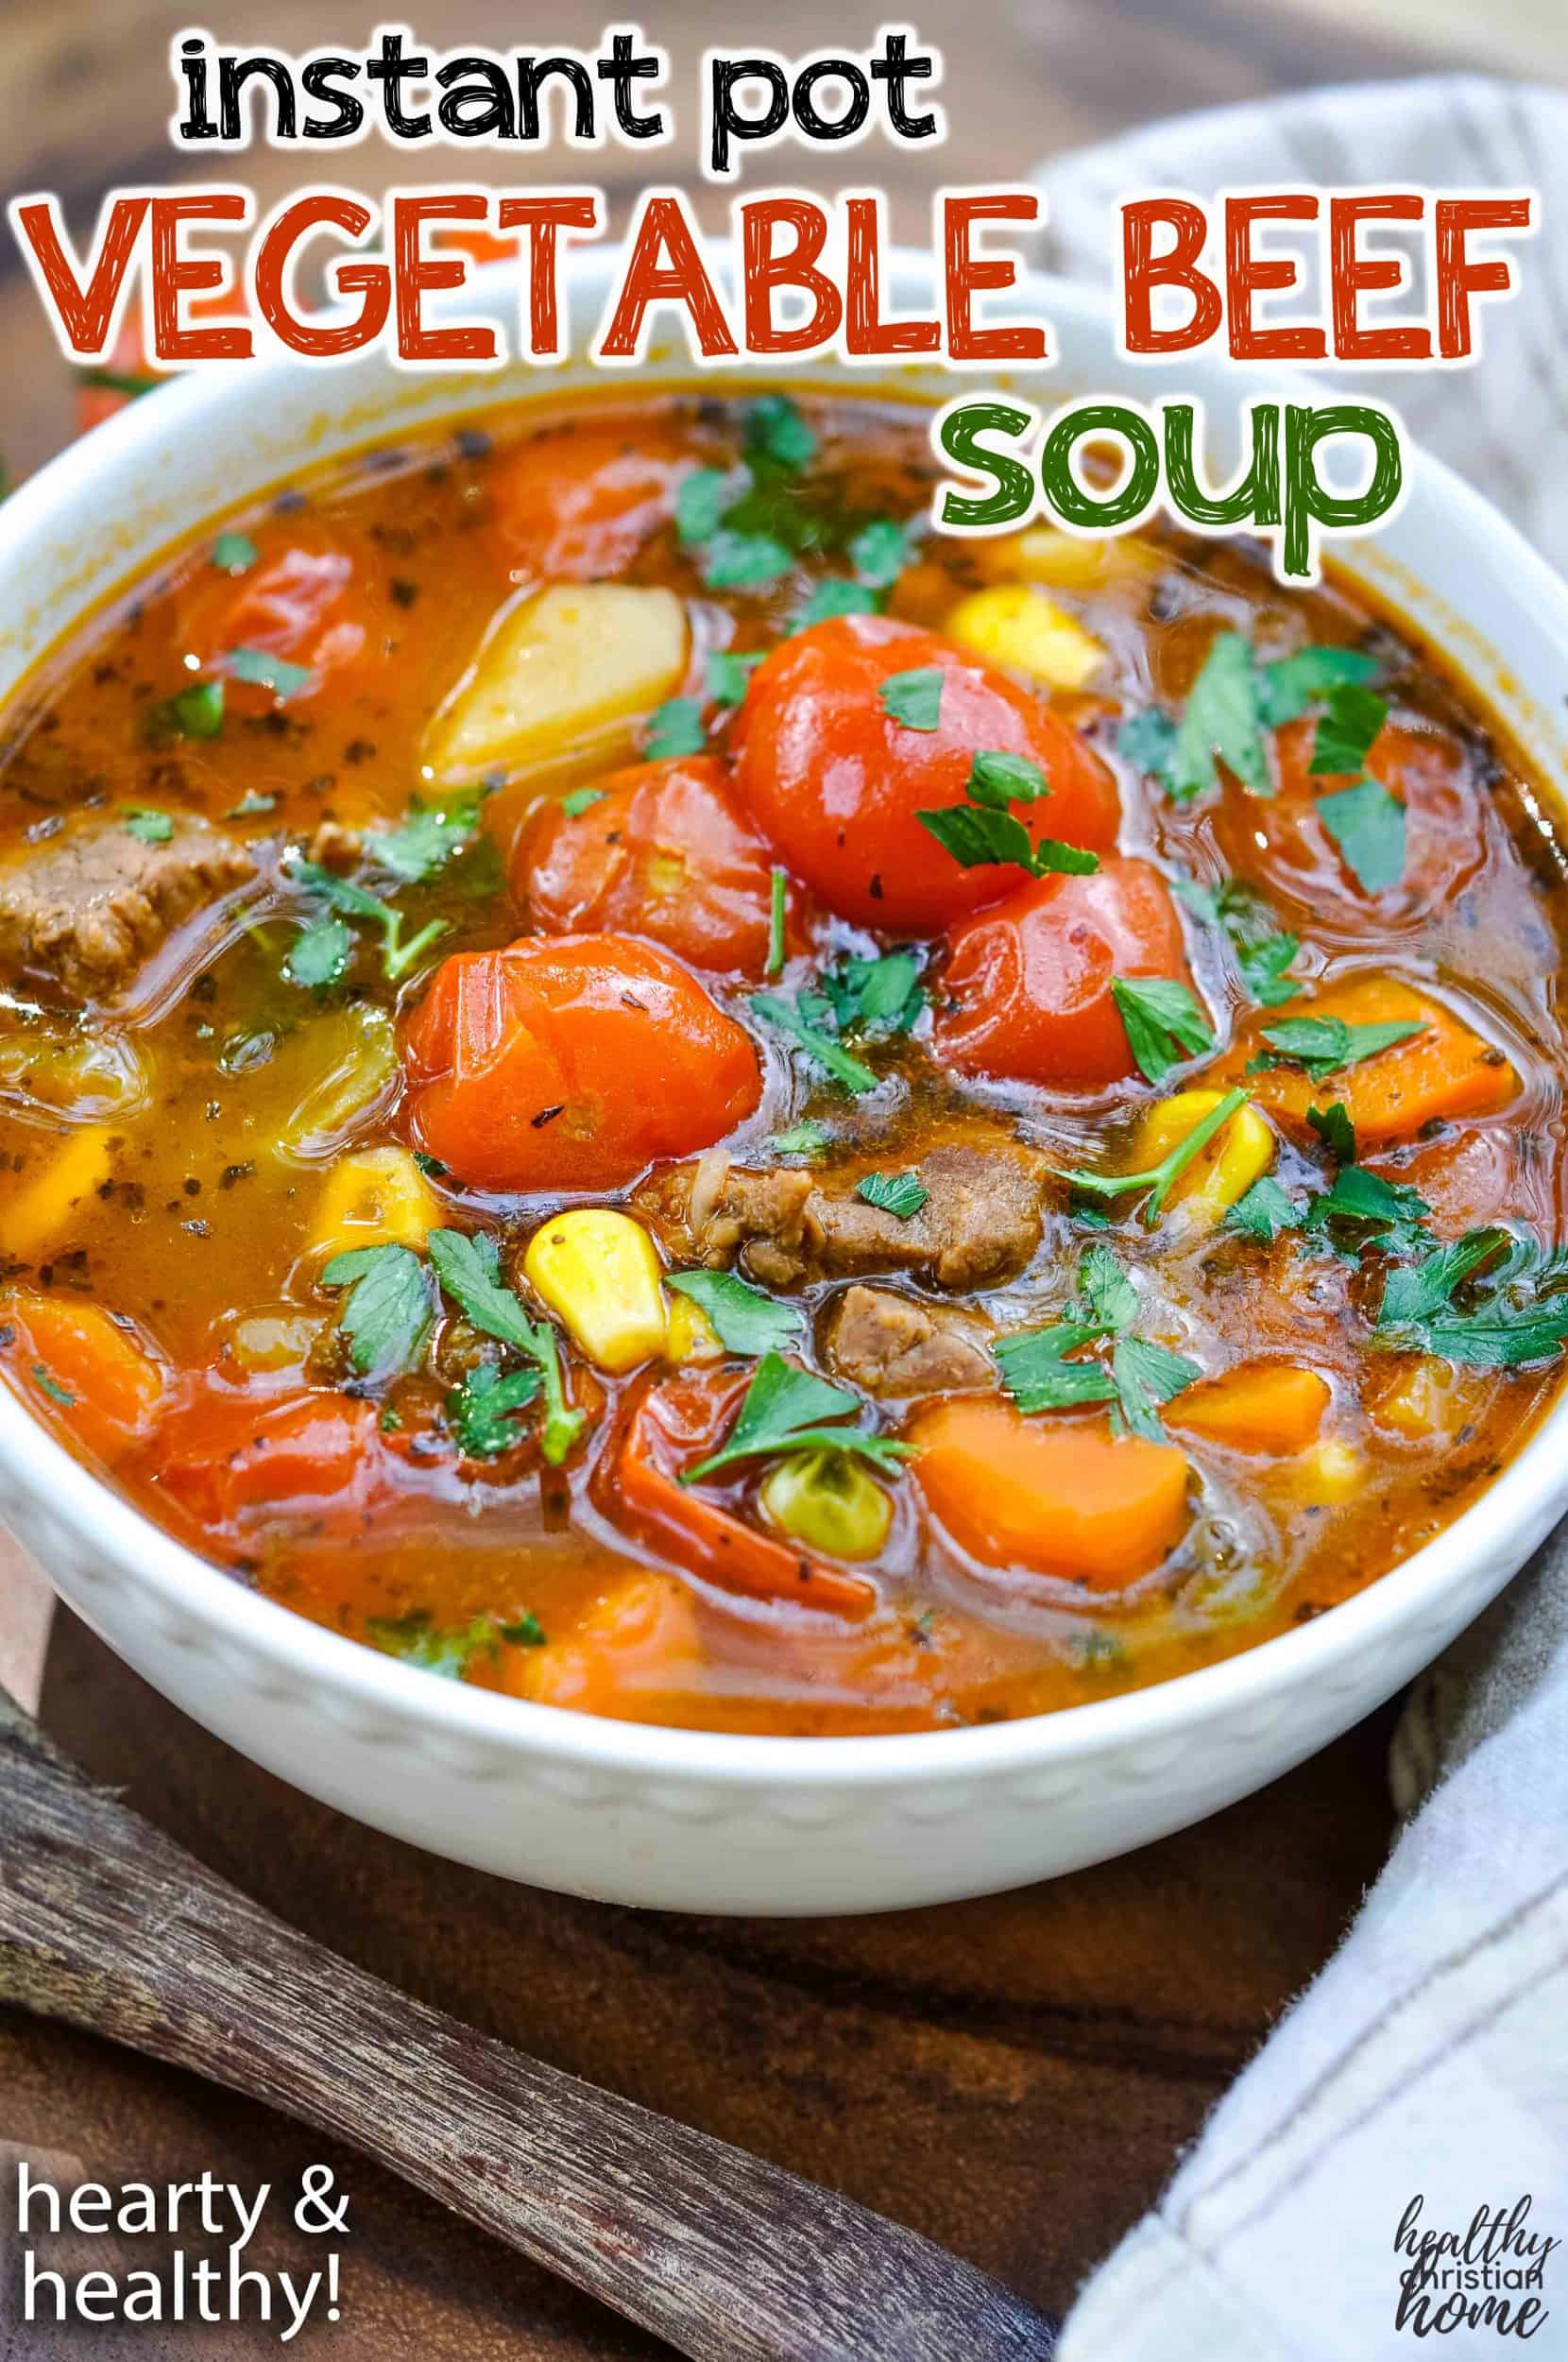 Instant Pot vegetable beef soup in a white bowl with title text.